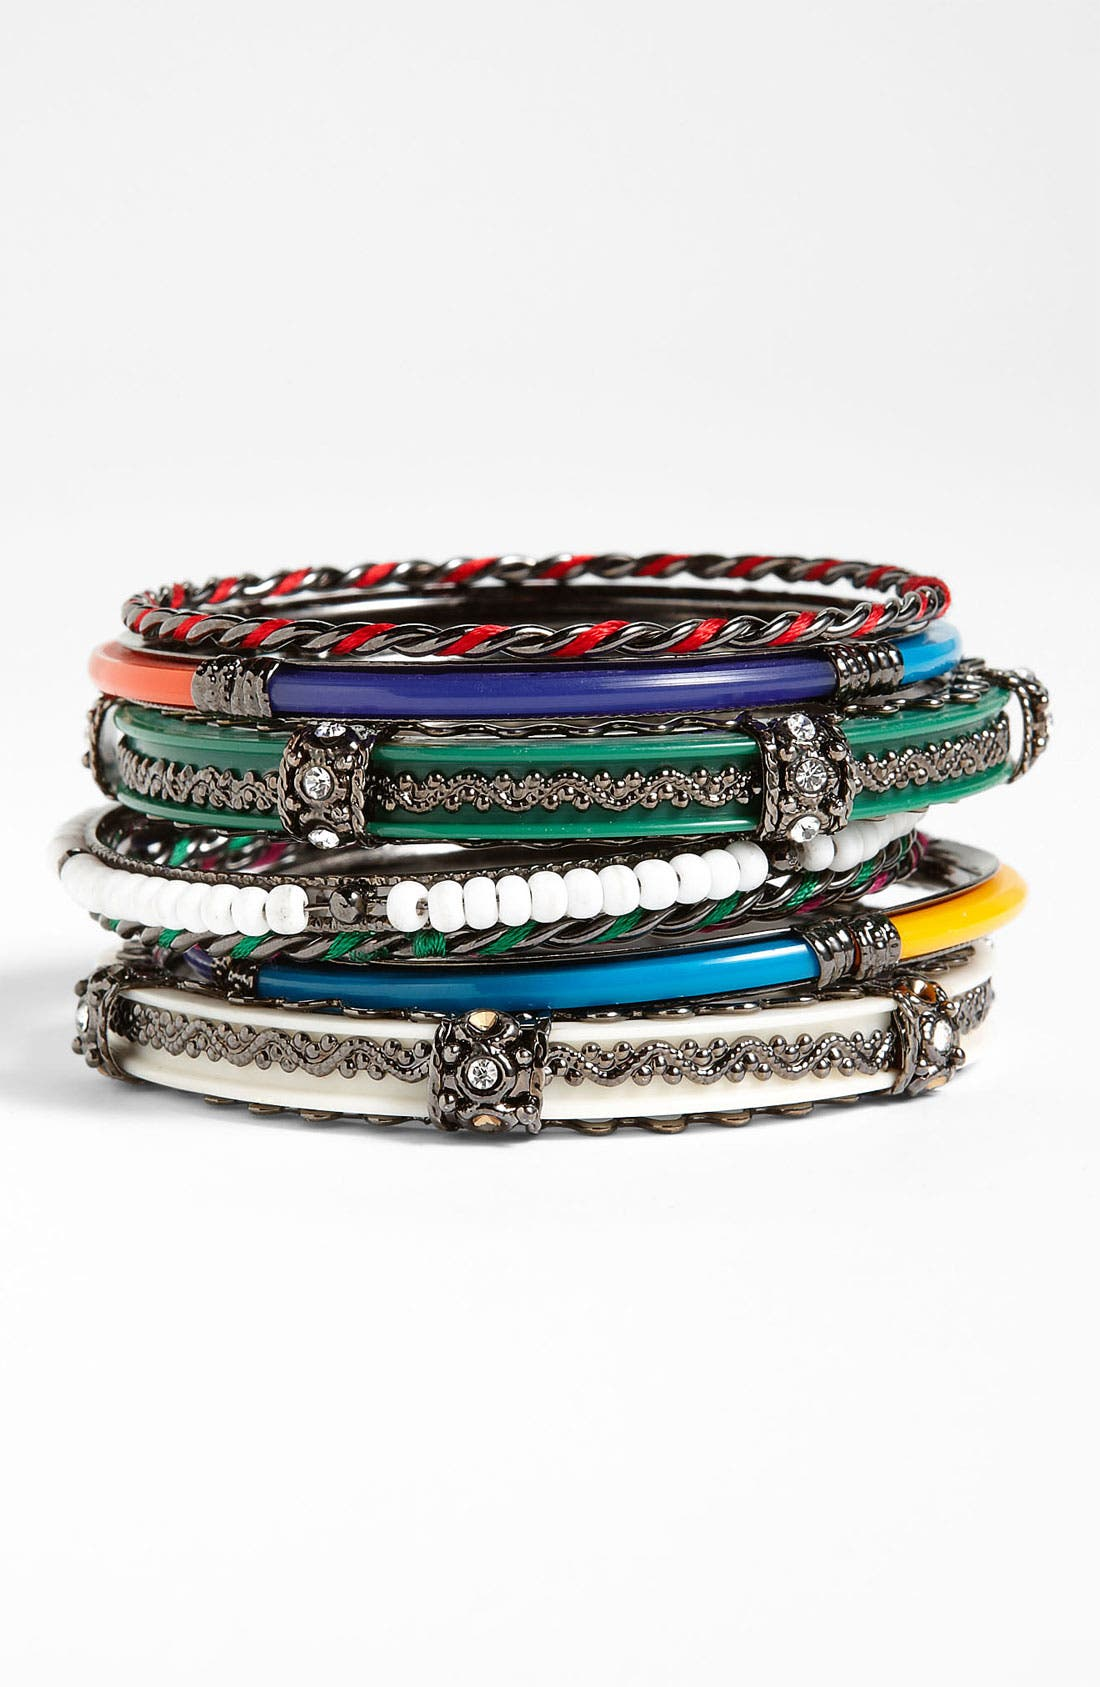 Main Image - Spring Street Bangles (Set of 8)